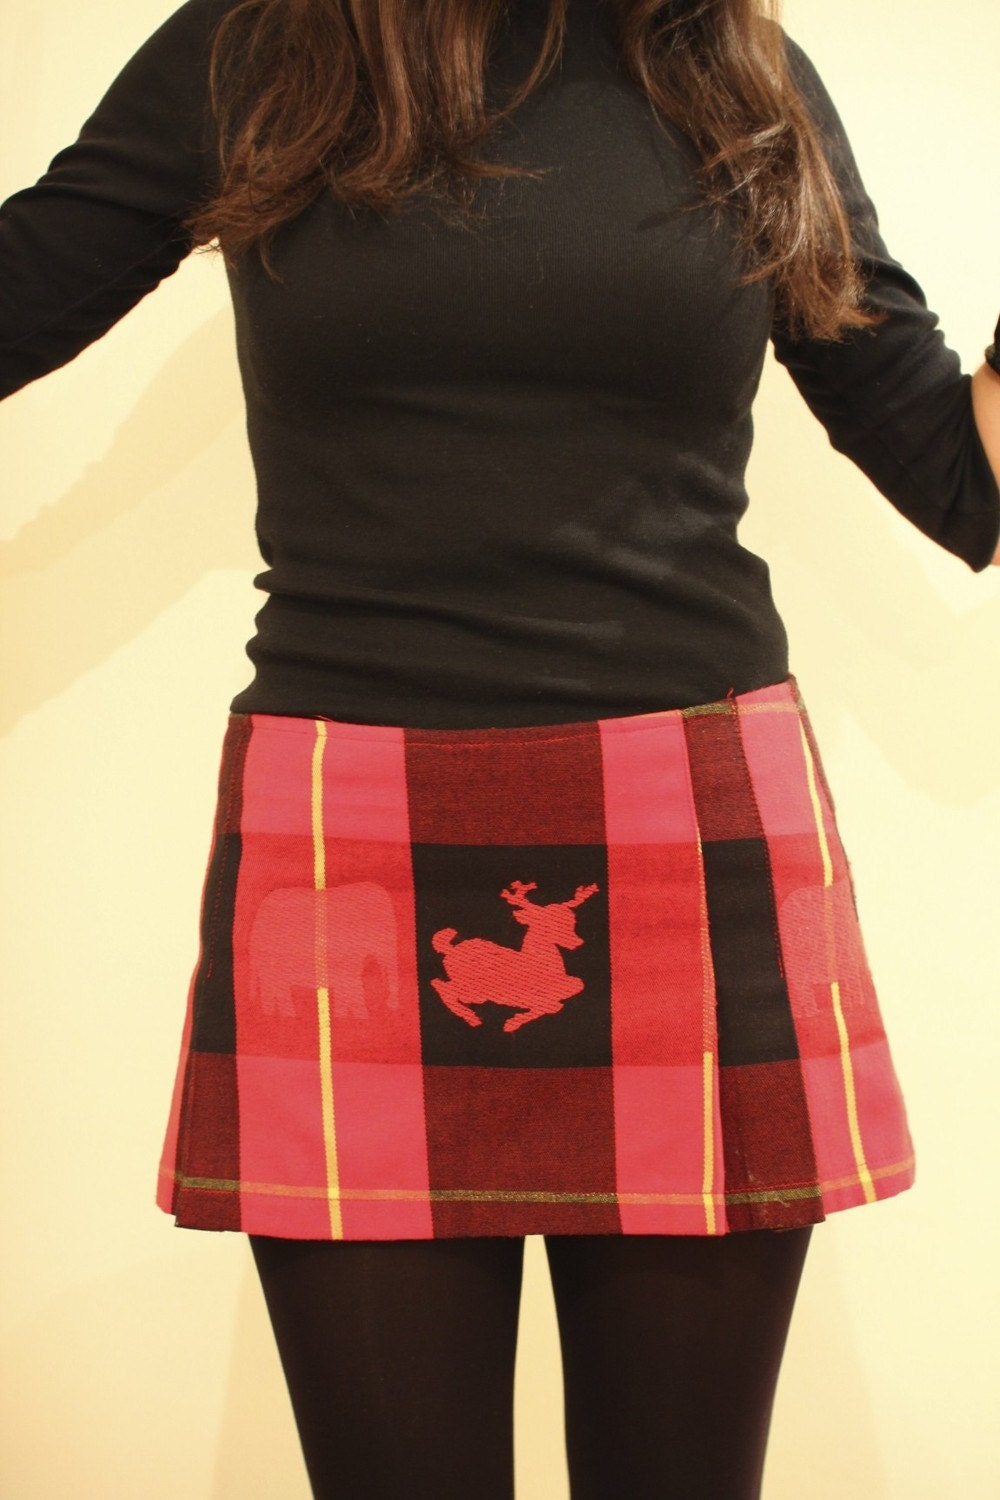 SALE SALE SALE (it was 25) red pleated mini skirt with deer and elephant apres ski